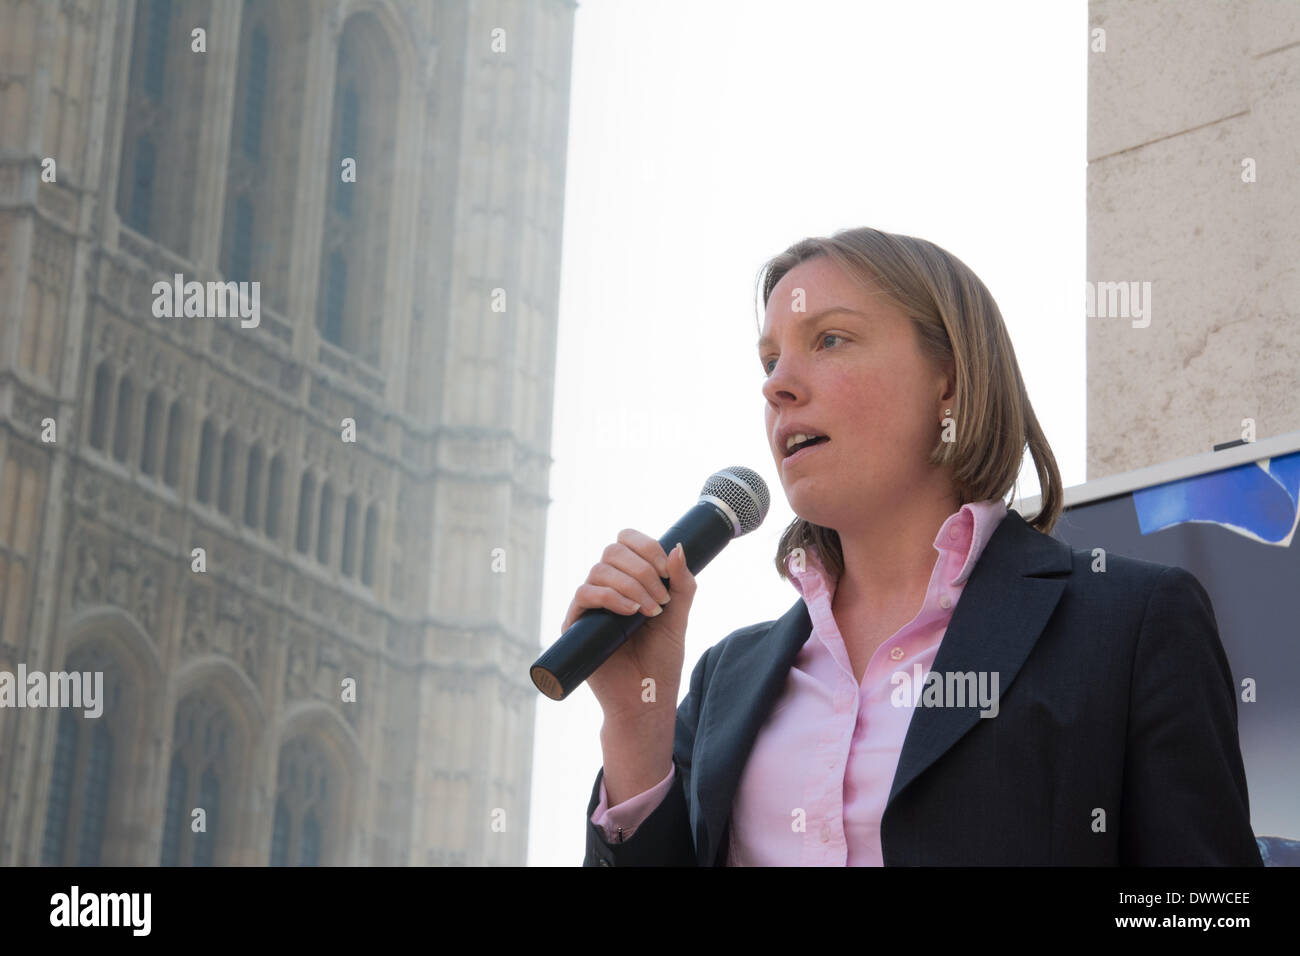 London, UK. 13th Mar, 2014. Tory MP Tracy Crouch speaks against the badger cull as protesters gather outside Westminster, while a parliamentary debate on the controversial badger cull takes place inside the house of commons. Badgers have been linked to the spread of bovine tuberculosis in cattle and experimental culls of badgers were carried out in 2013 in an attempt to stop the spread of the disease. Anti-cull protestors have claimed that the cull is inefficient, inhumane and scientifically flawed. Credit:  Patricia Phillips/Alamy Live News - Stock Image